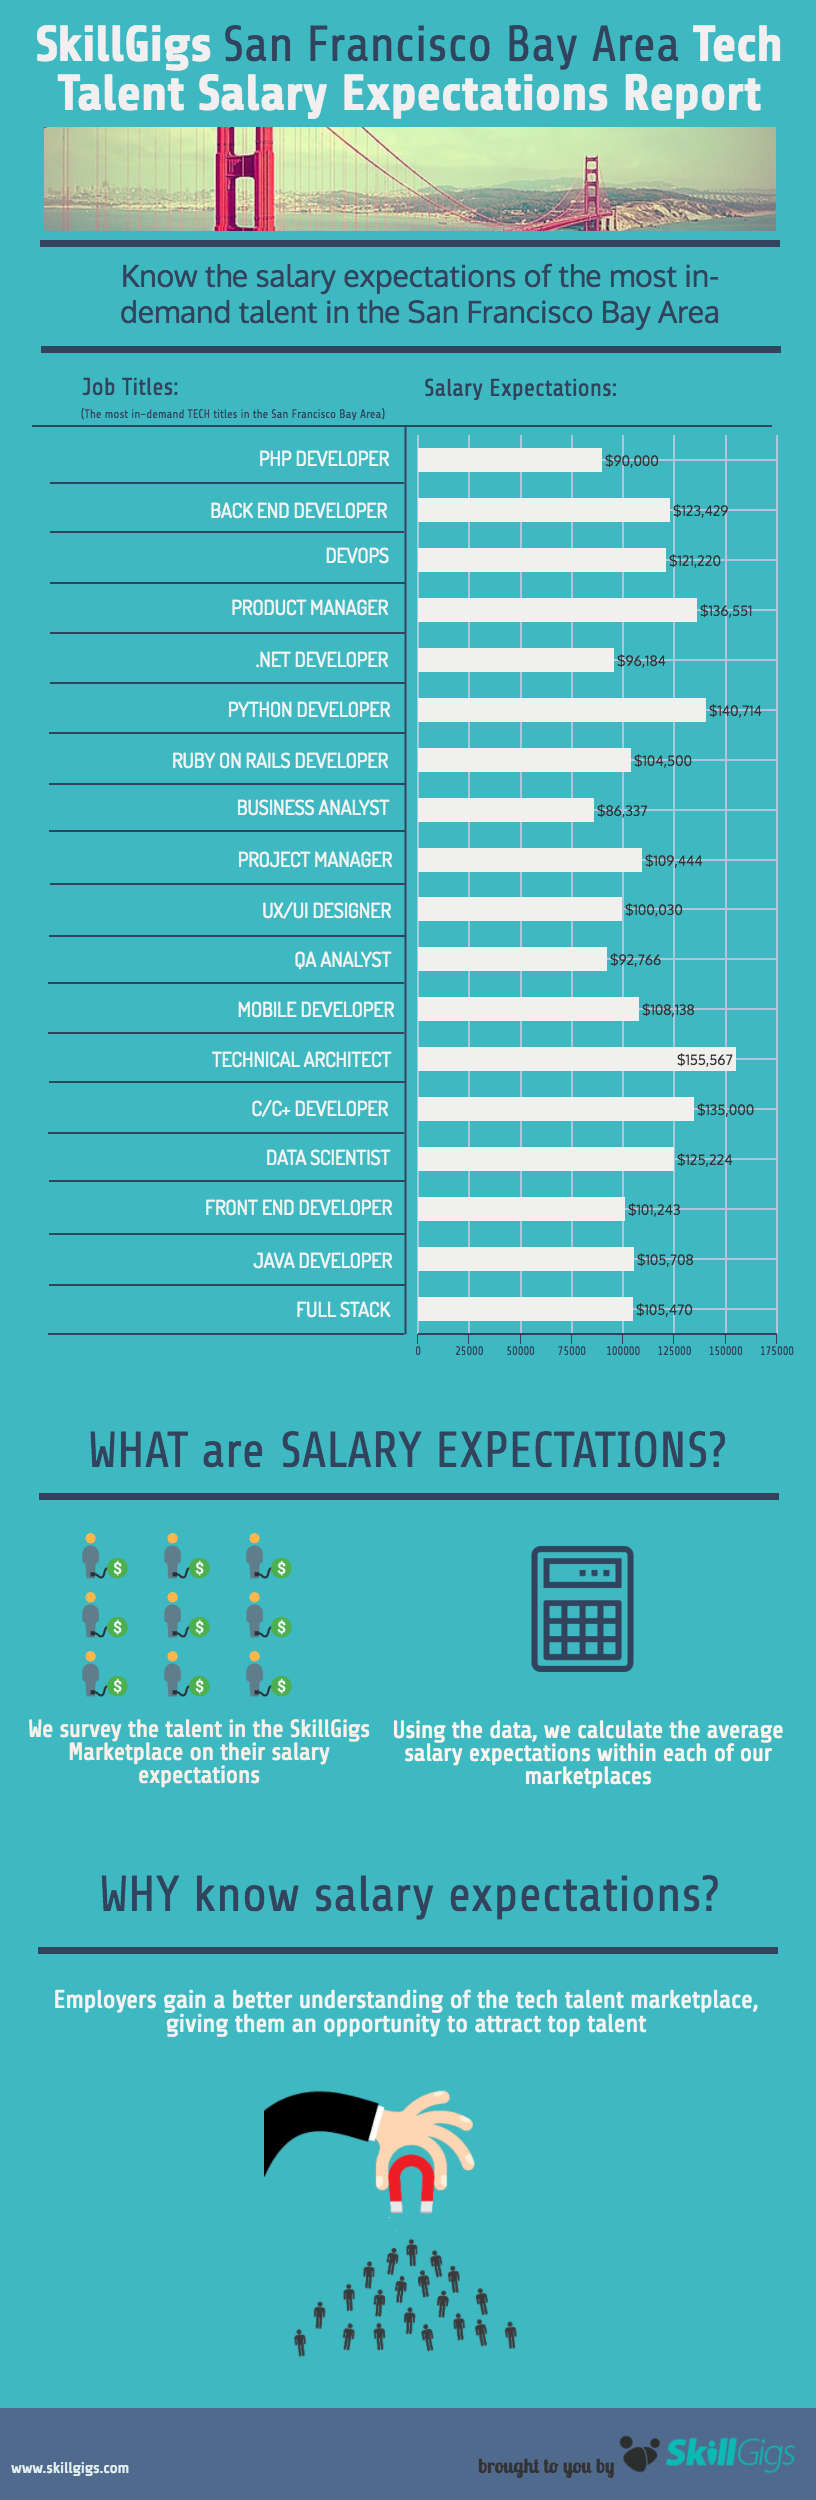 Tech Talent Salary Expectations Report For San Francisco Bay Area